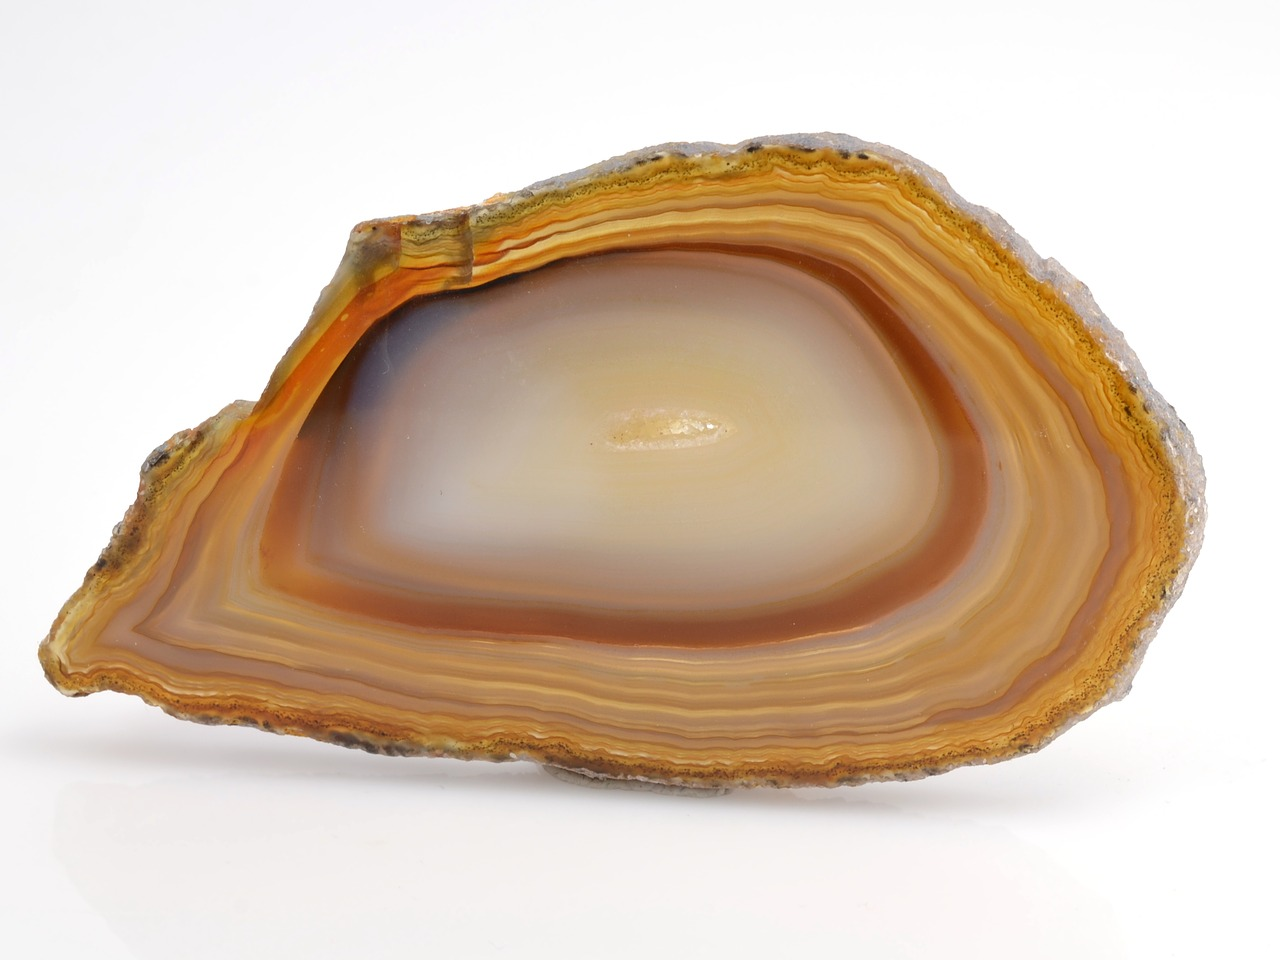 precious stone agate orange free photo